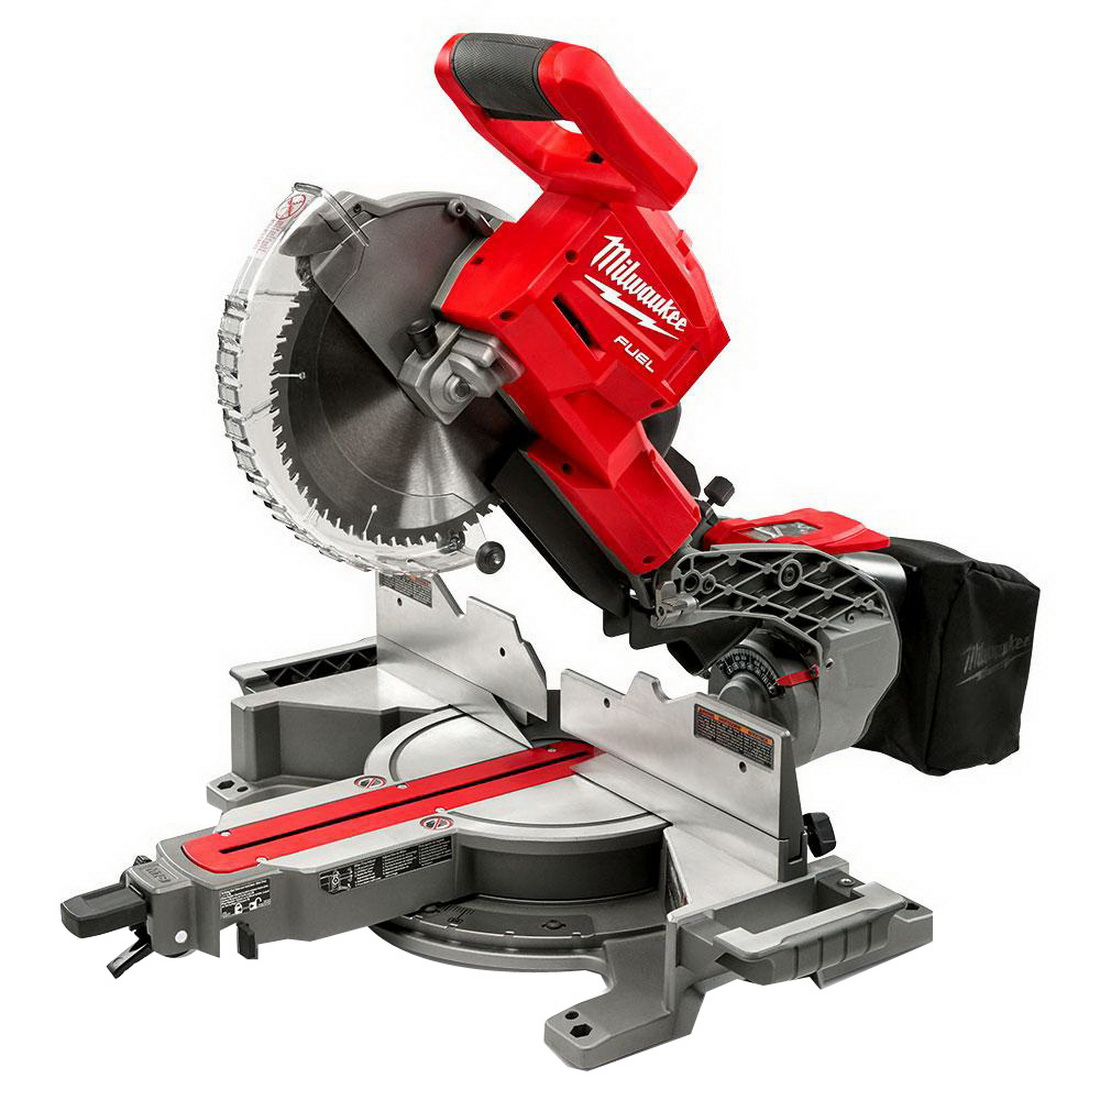 M18 FUEL Cordless Dual Bevel Sliding Compound Mitre Saw 254mm (Tool Only)